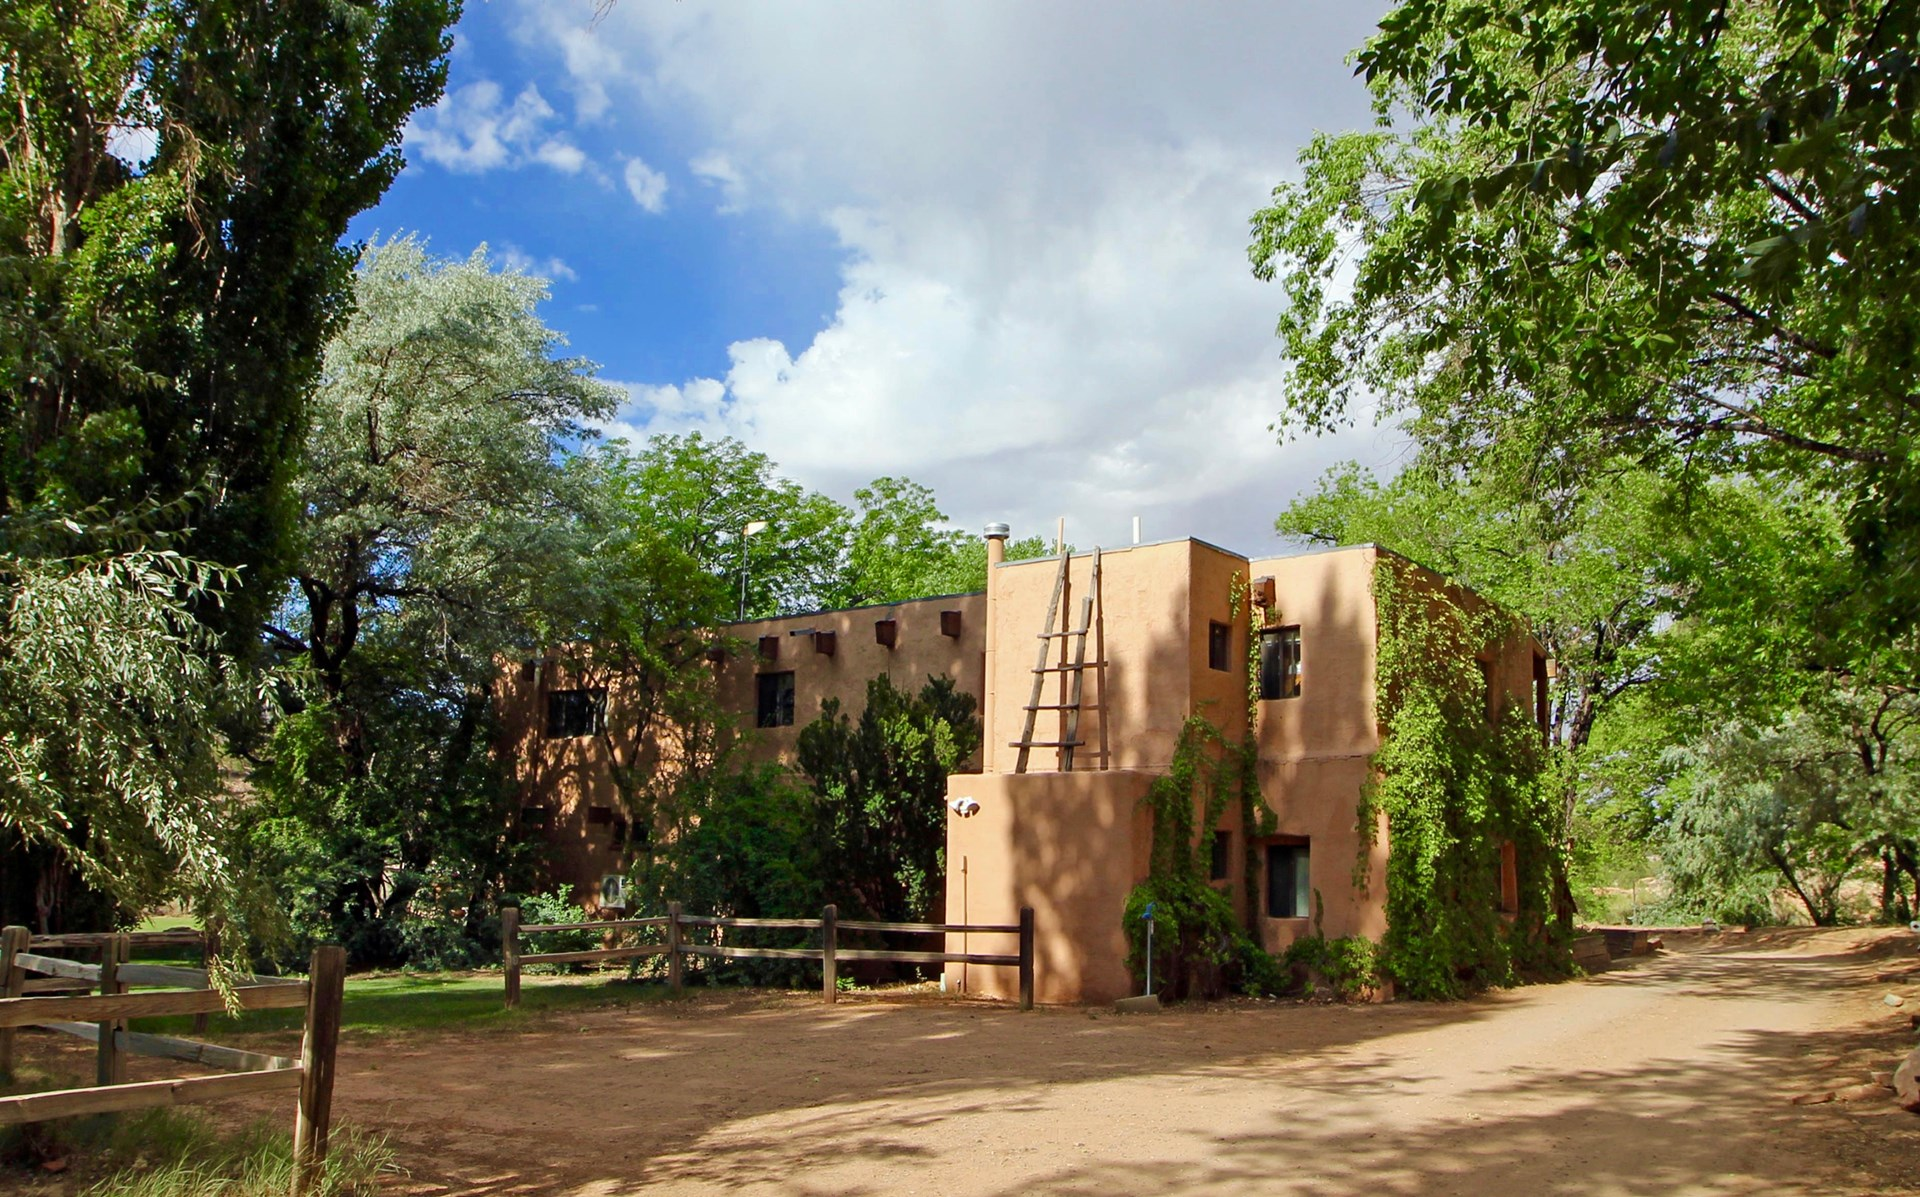 Colorado Bed and Breakfast For Sale in Southwest CO